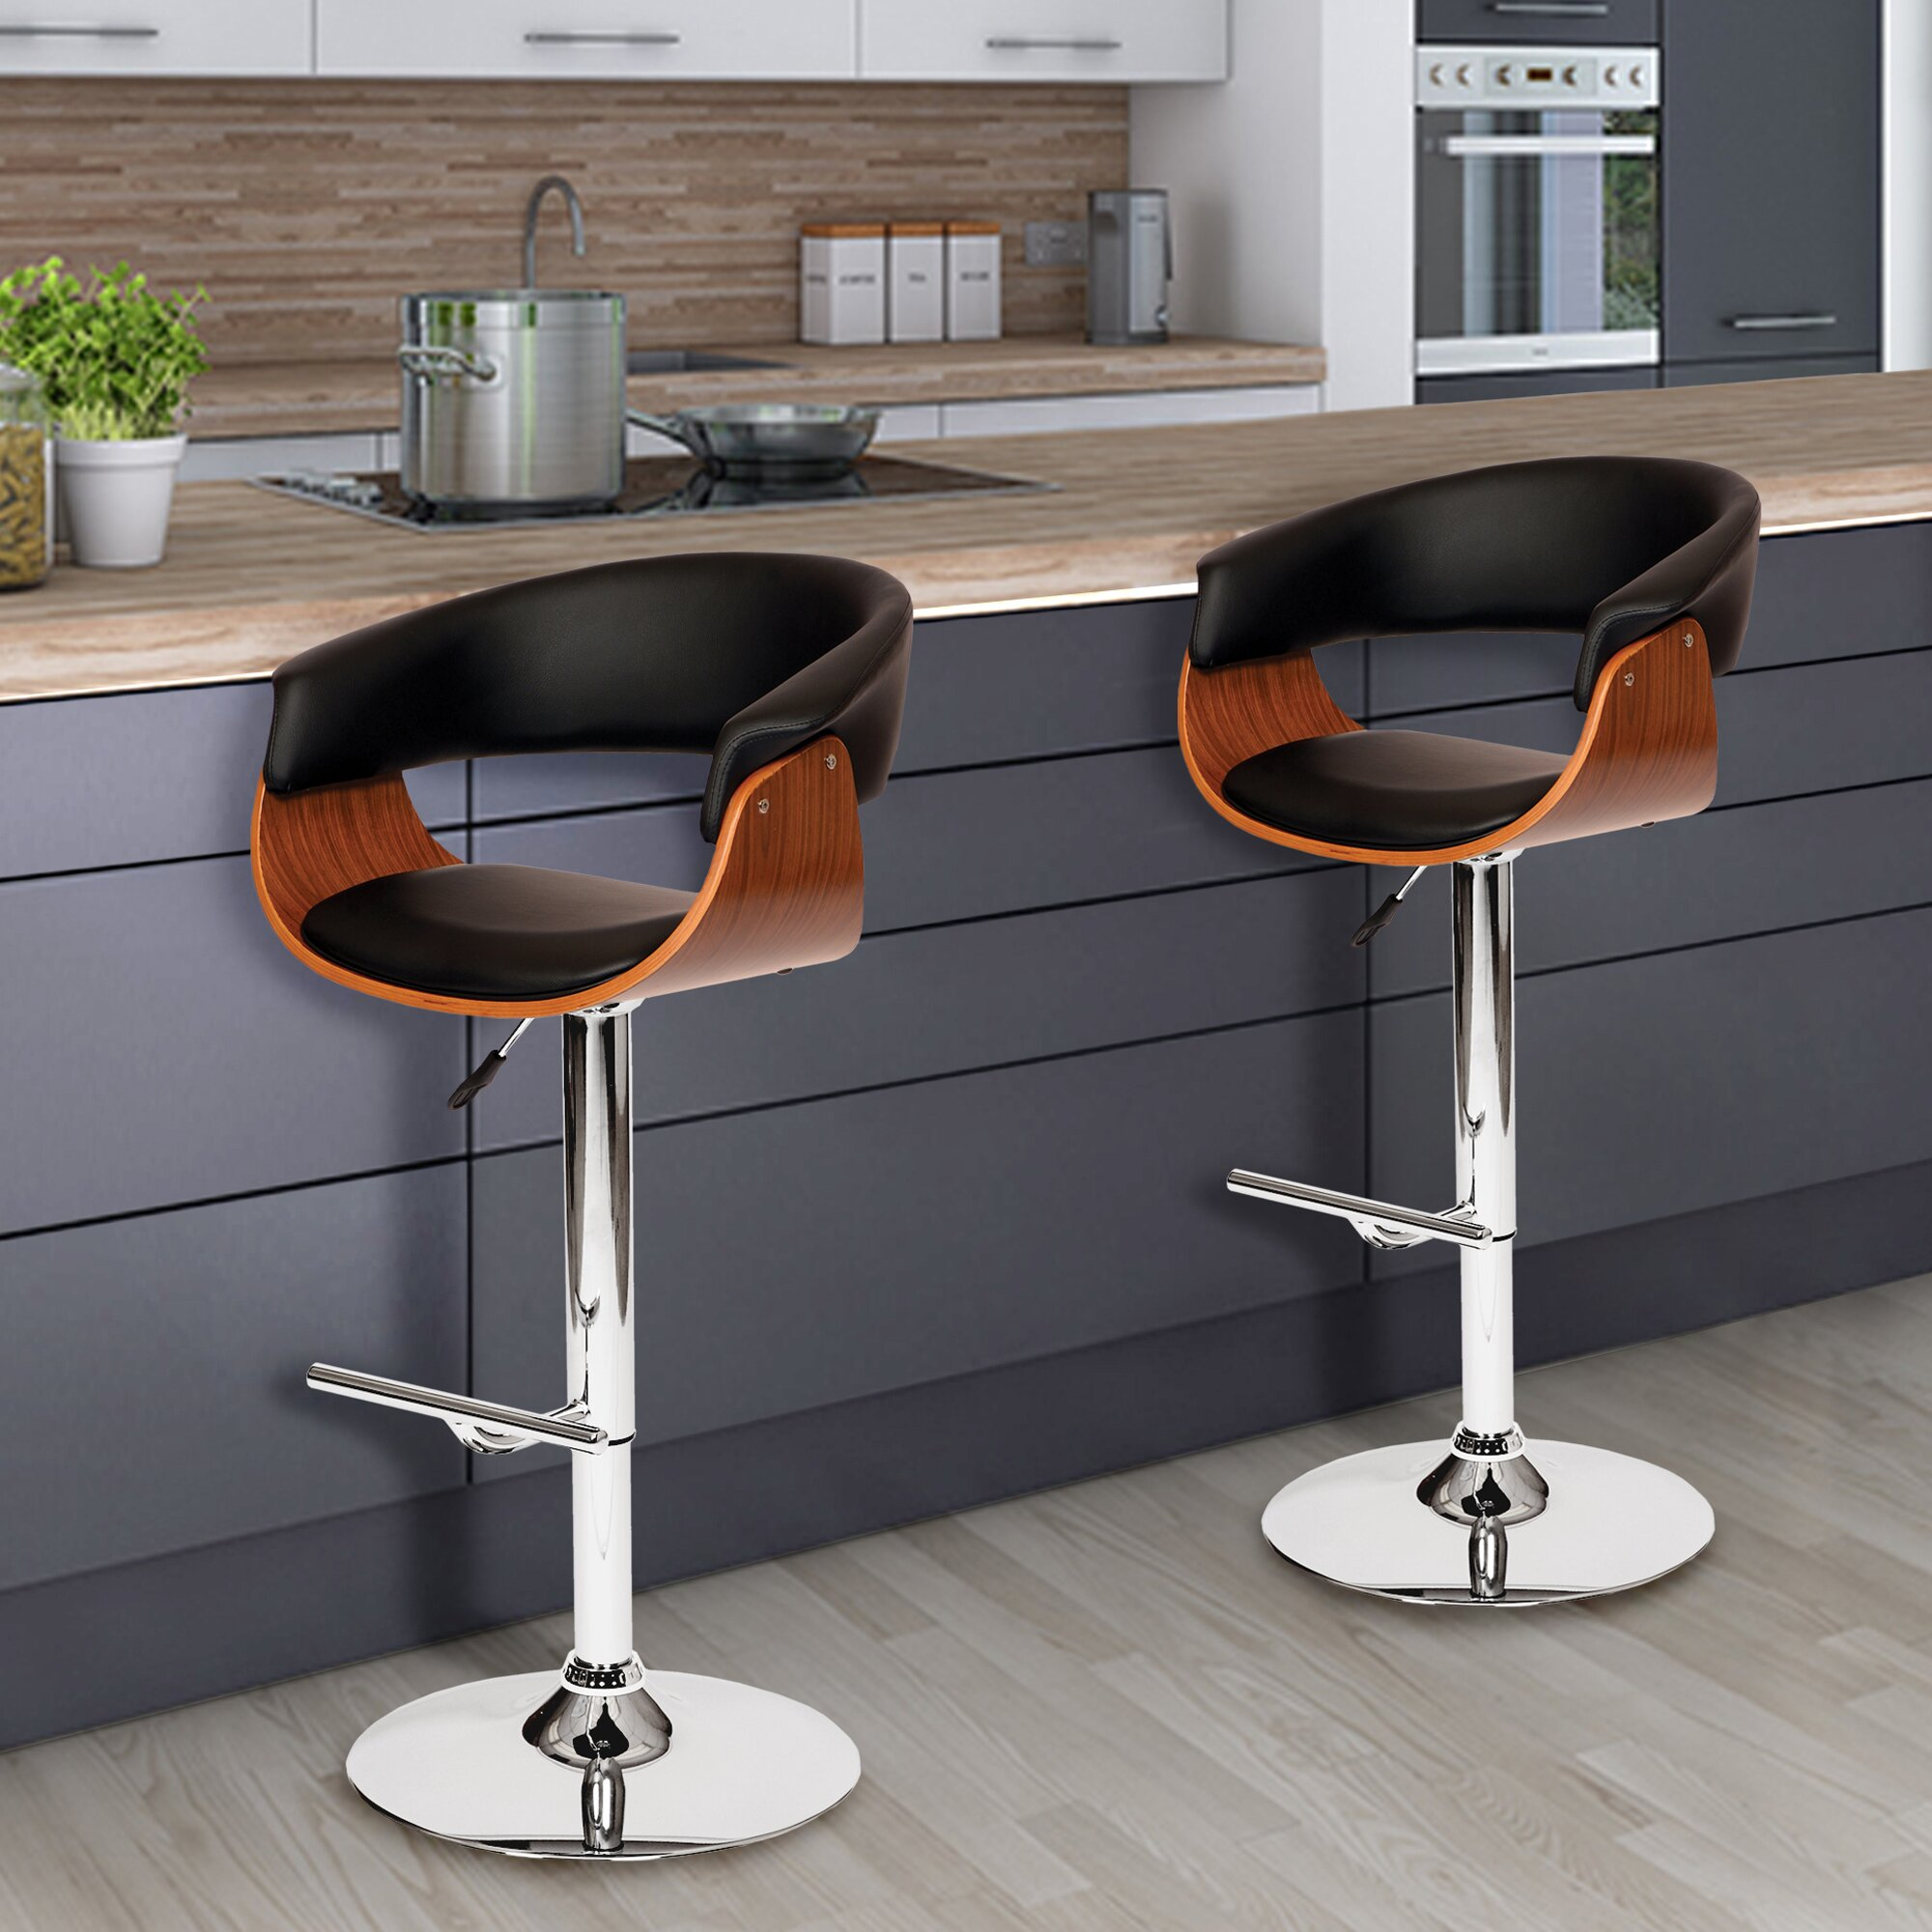 Corrigan Studio March Adjustable Height Swivel Bar Stool